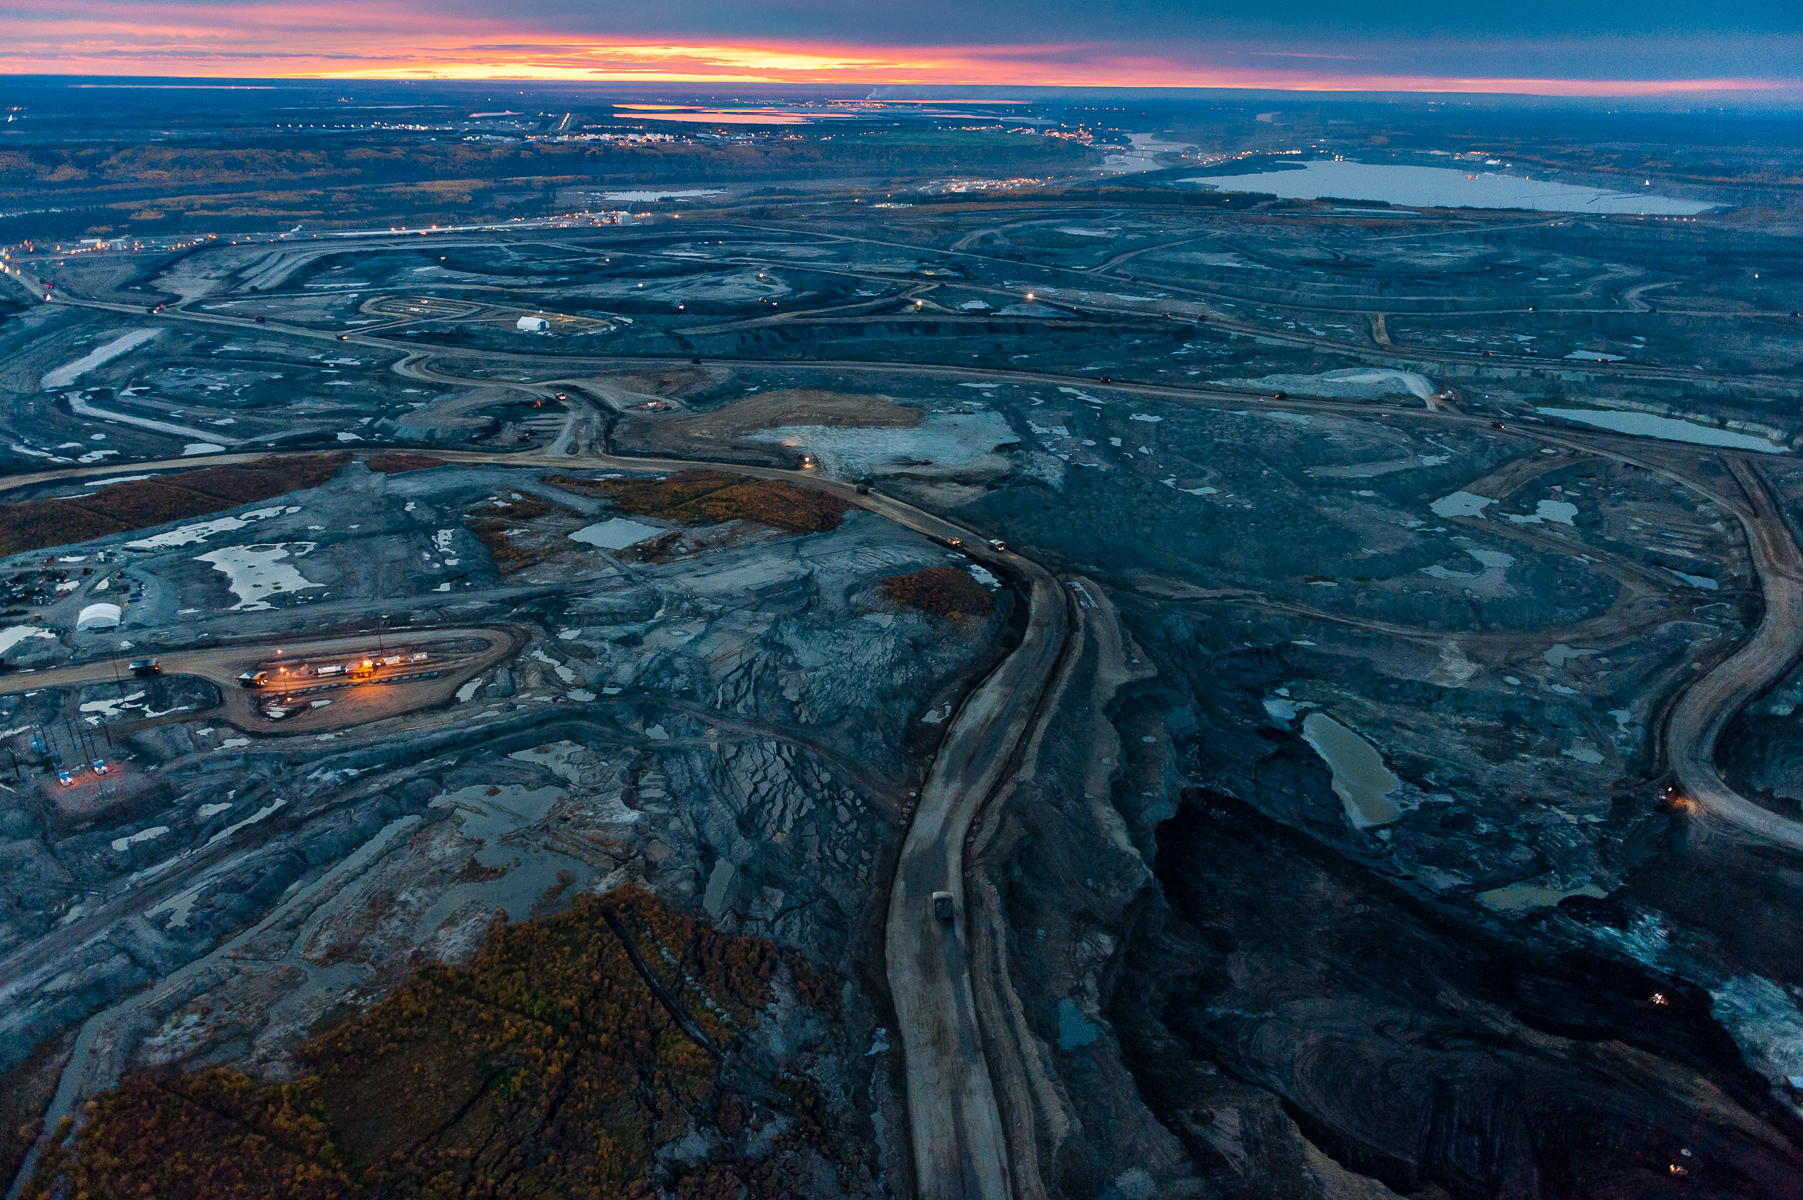 """Twenty four hours a day the Tar Sands eats into the most carbon rich forest ecosystem on the planet. Storing almost twice as much carbon per hectare as tropical rainforests, the boreal forest is the planet's greatest terrestrial carbon storehouse. To the industry, these diverse and ecologically significant forests and wetlands are referred to as overburden, the forest to be stripped and the wetlands dredged and replaced by mines and tailings ponds so vast they can be seen from outer space.Limited Edition Fine Art PrintsAll prices in U.S. dollars.Prices are for prints only and do not include tax or shipping.16""""x24""""  edition of 25  /  $100020""""x30""""edition of 15  /  $150030""""x45""""edition of 10  /  $350040""""x60"""" /        edition of 6   /   $6000"""